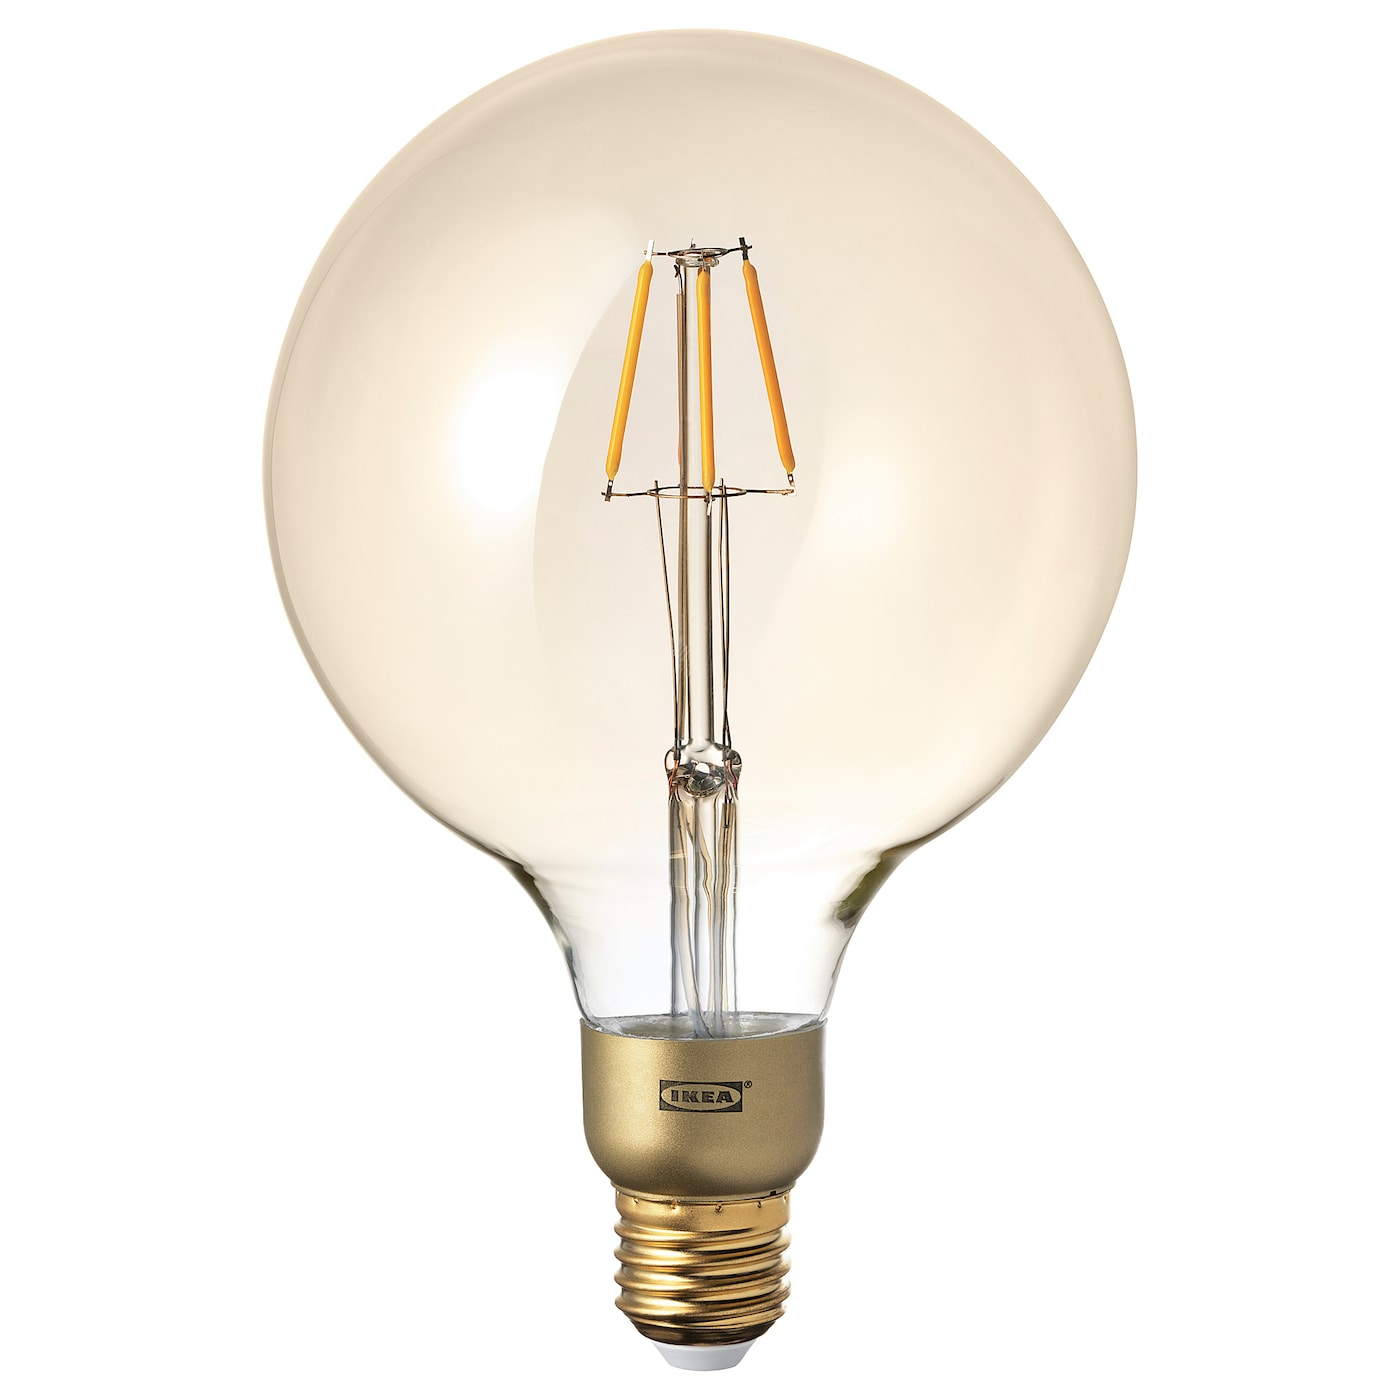 Light Bulbs Led Accessories Ikea To A Small Lightbulb With Just One Battery And Wire Lunnom Bulb E27 400 Lumen